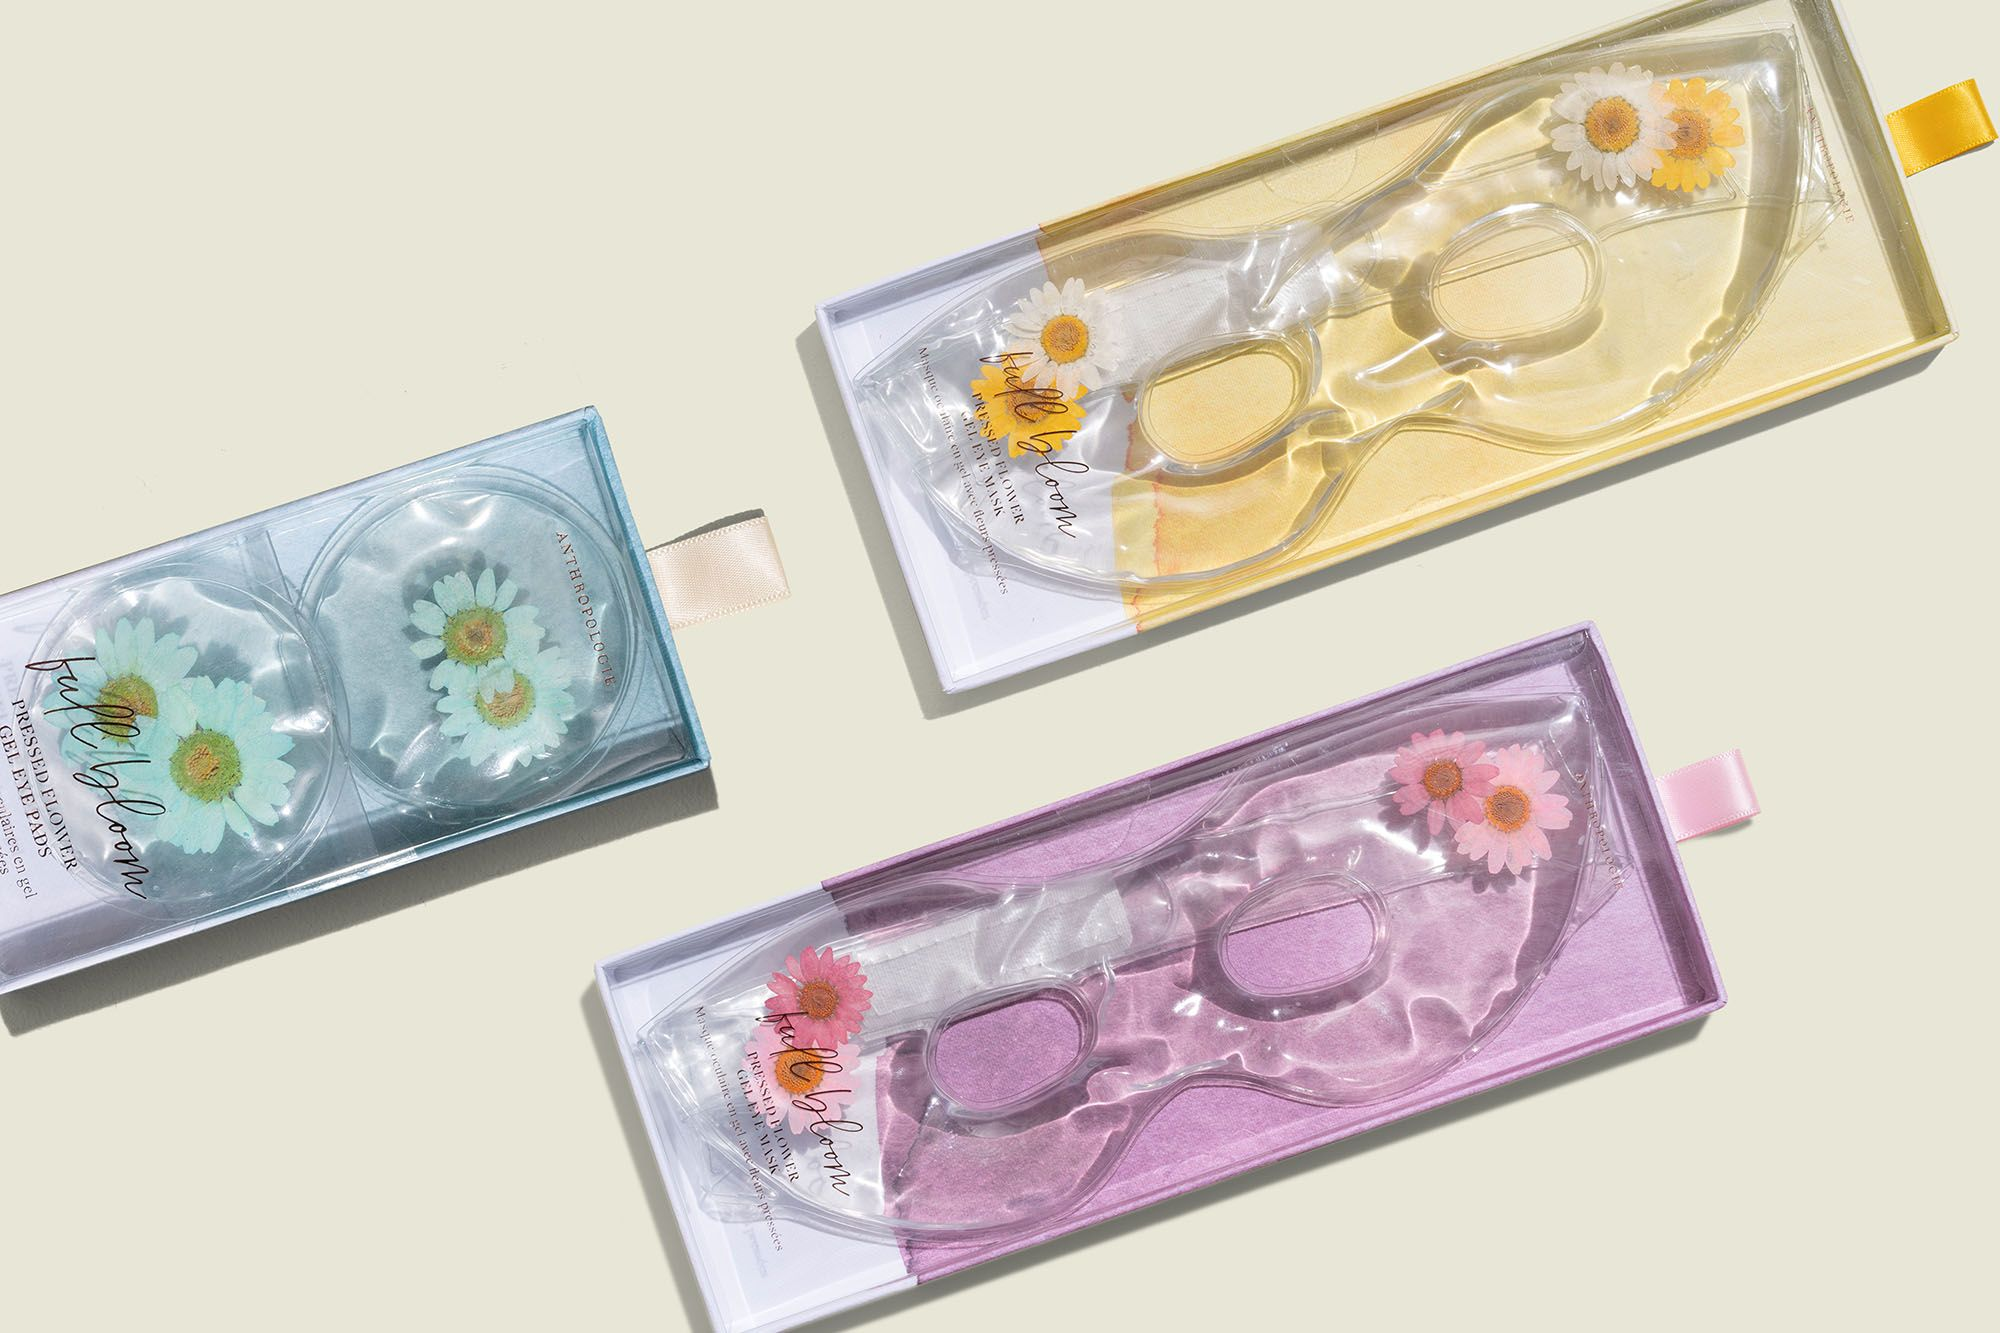 Custom packaging with eye mask and eye pads